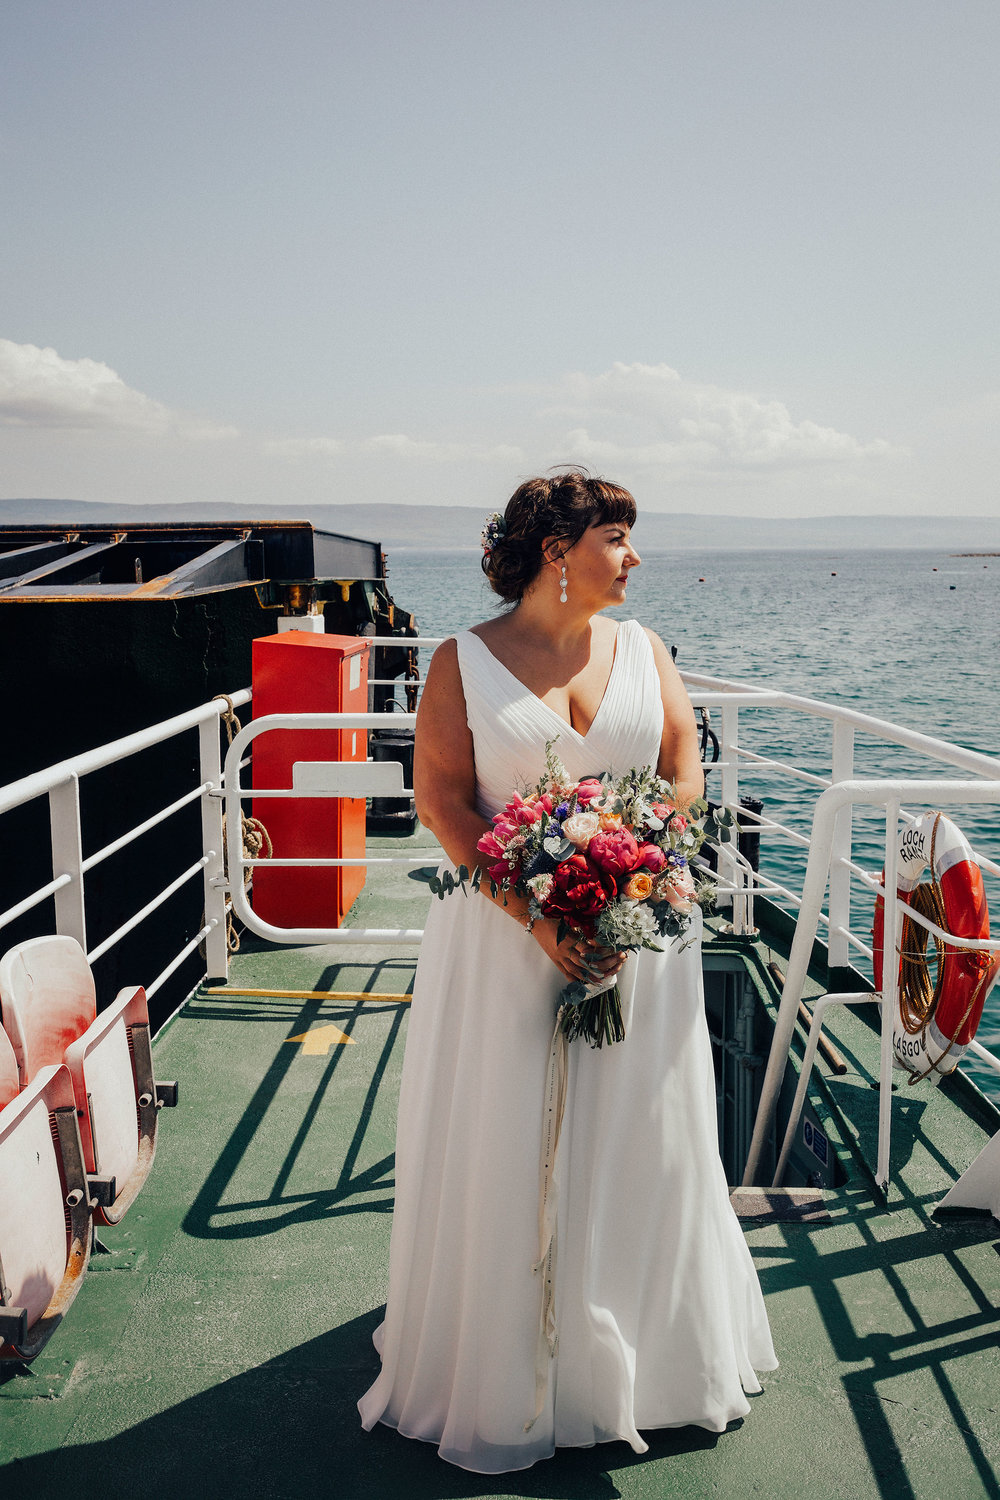 SCOTTISH_ELOPEMENT_PHOTOGRAPHER_PJ_PHILLIPS_PHOTOGRAPHY_109.jpg